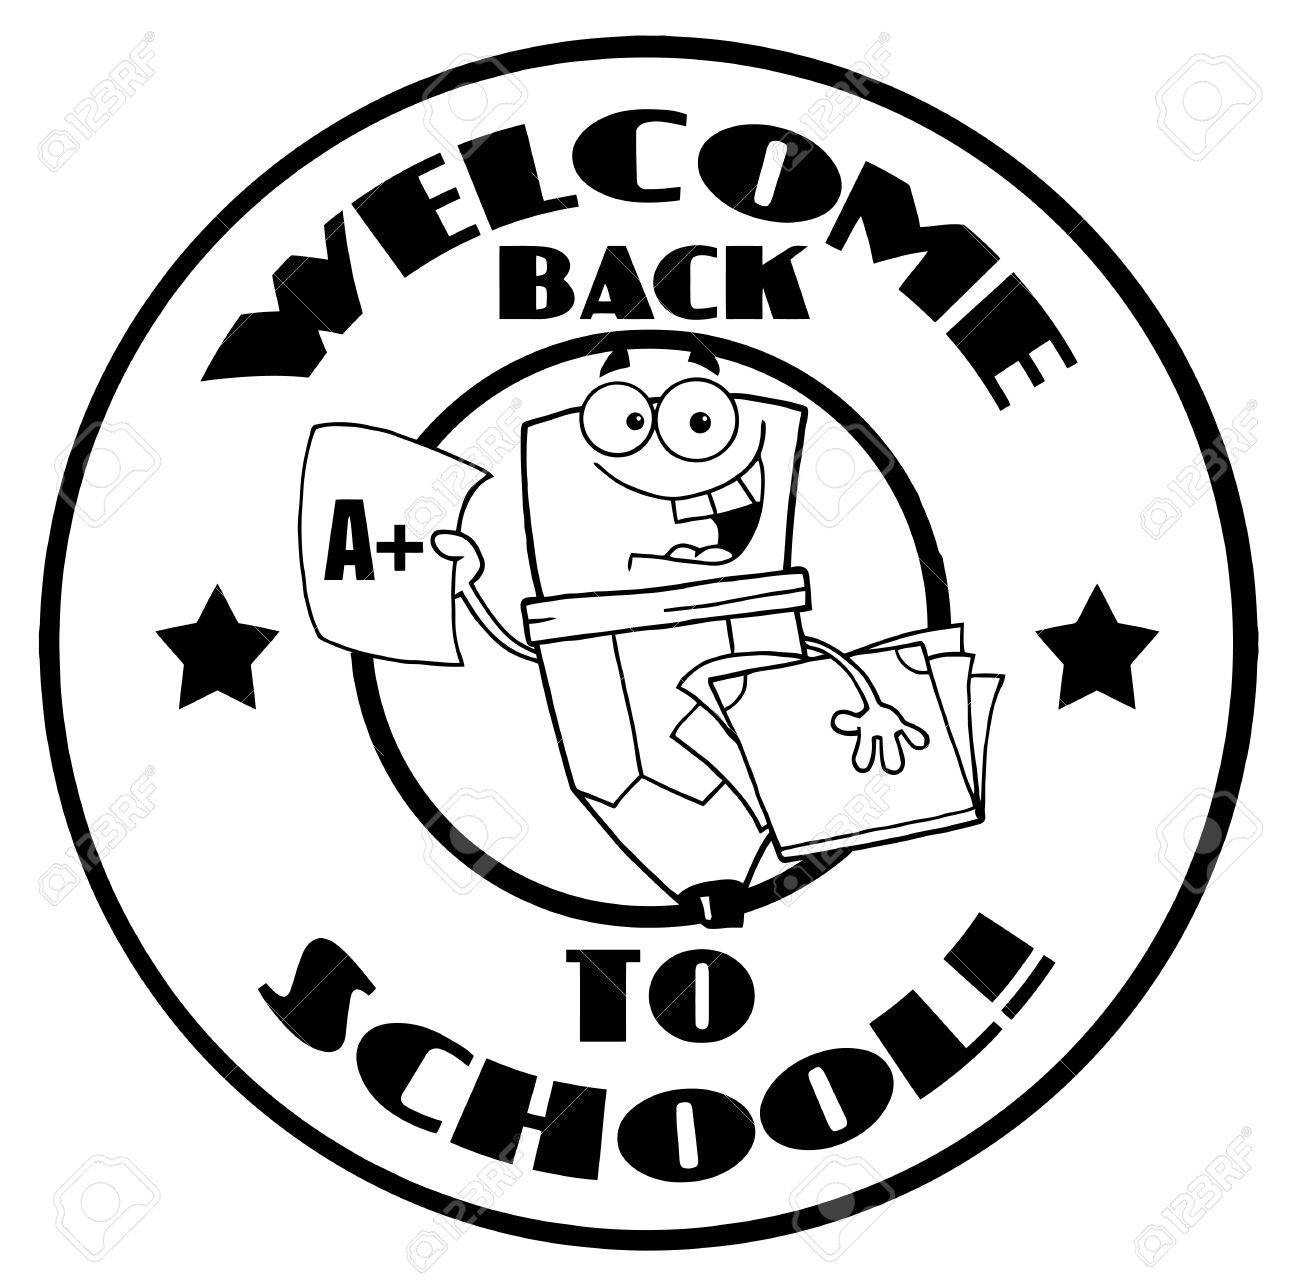 black and white welcome back to school pencil circle royalty free